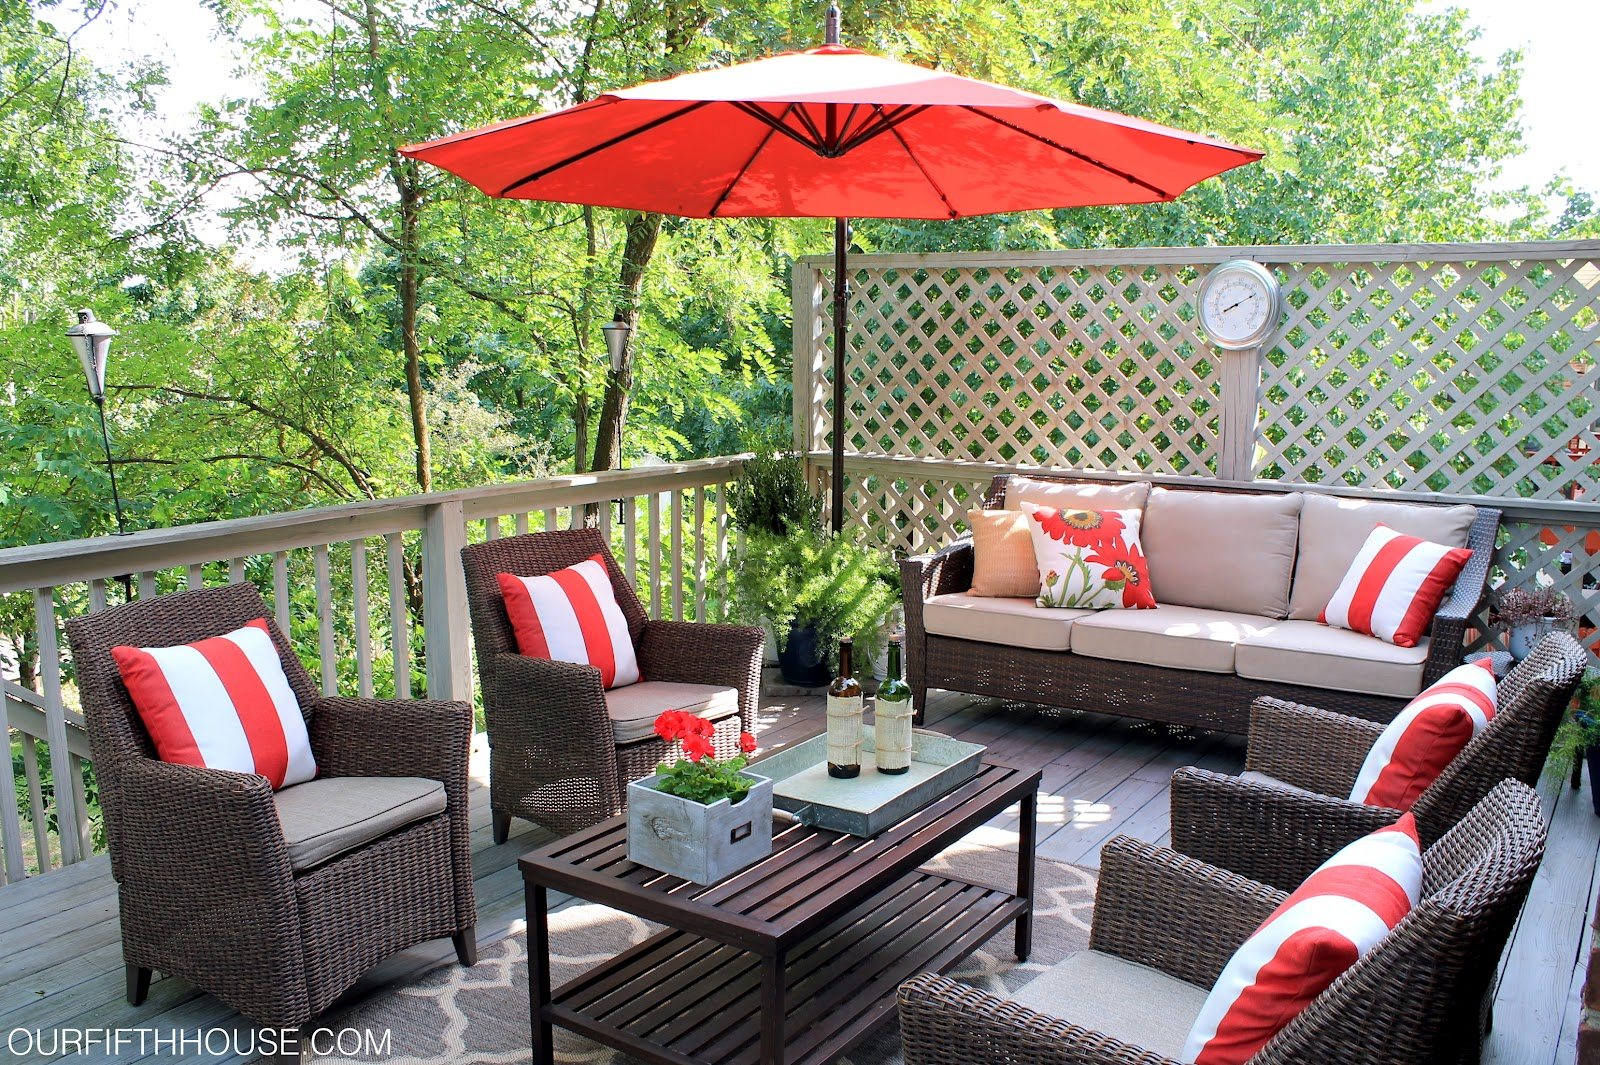 Outdoor living deck updates our fifth house for Deck furniture